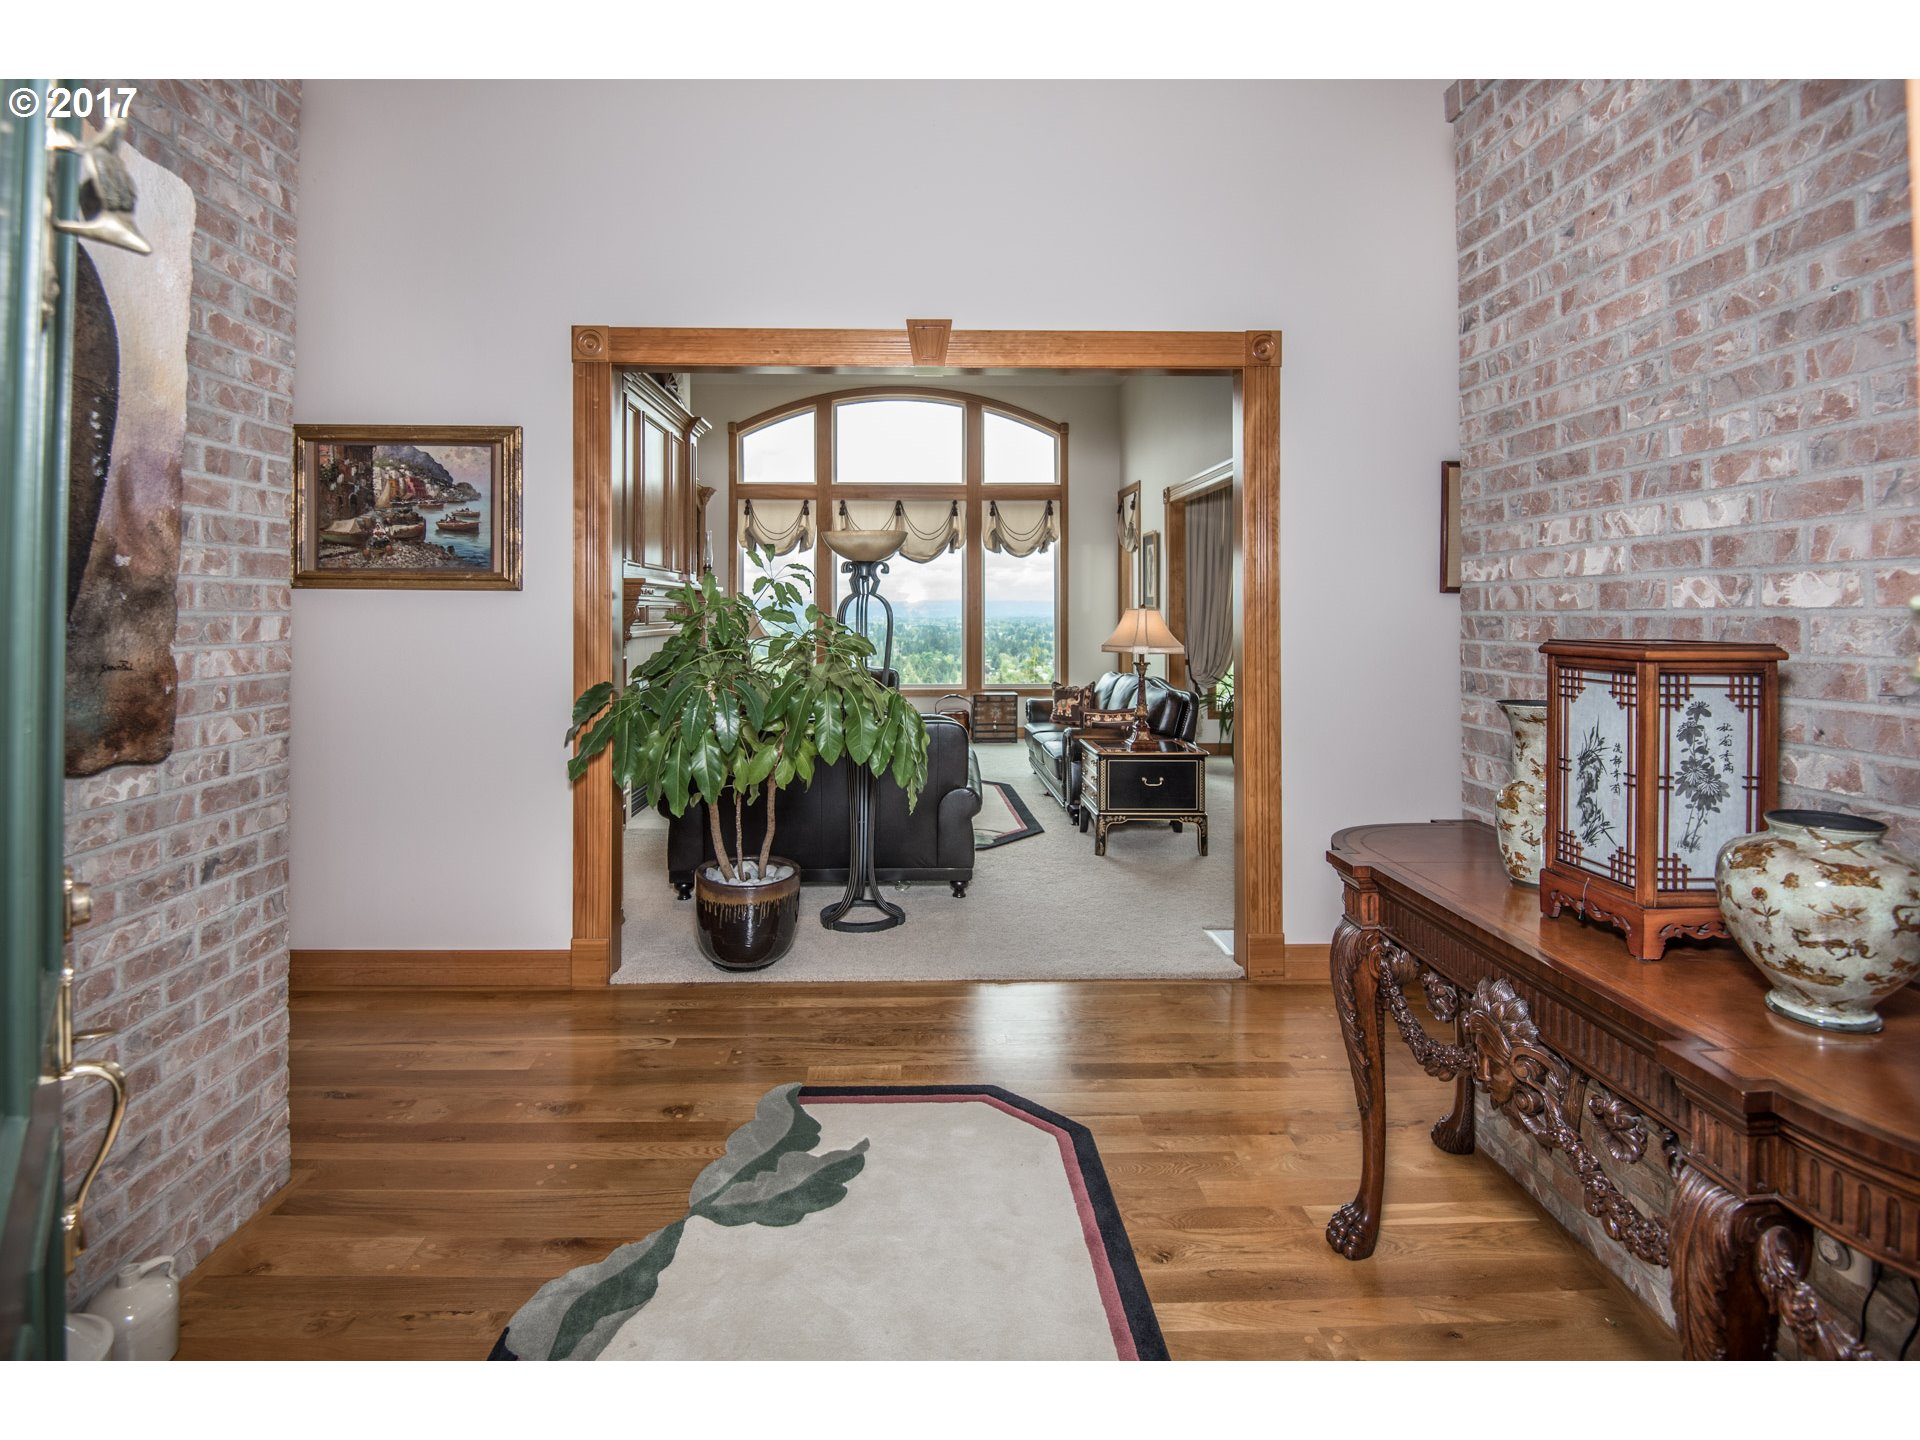 3671 sq. ft 2 bedrooms 3 bathrooms  House For Sale,Beaverton, OR